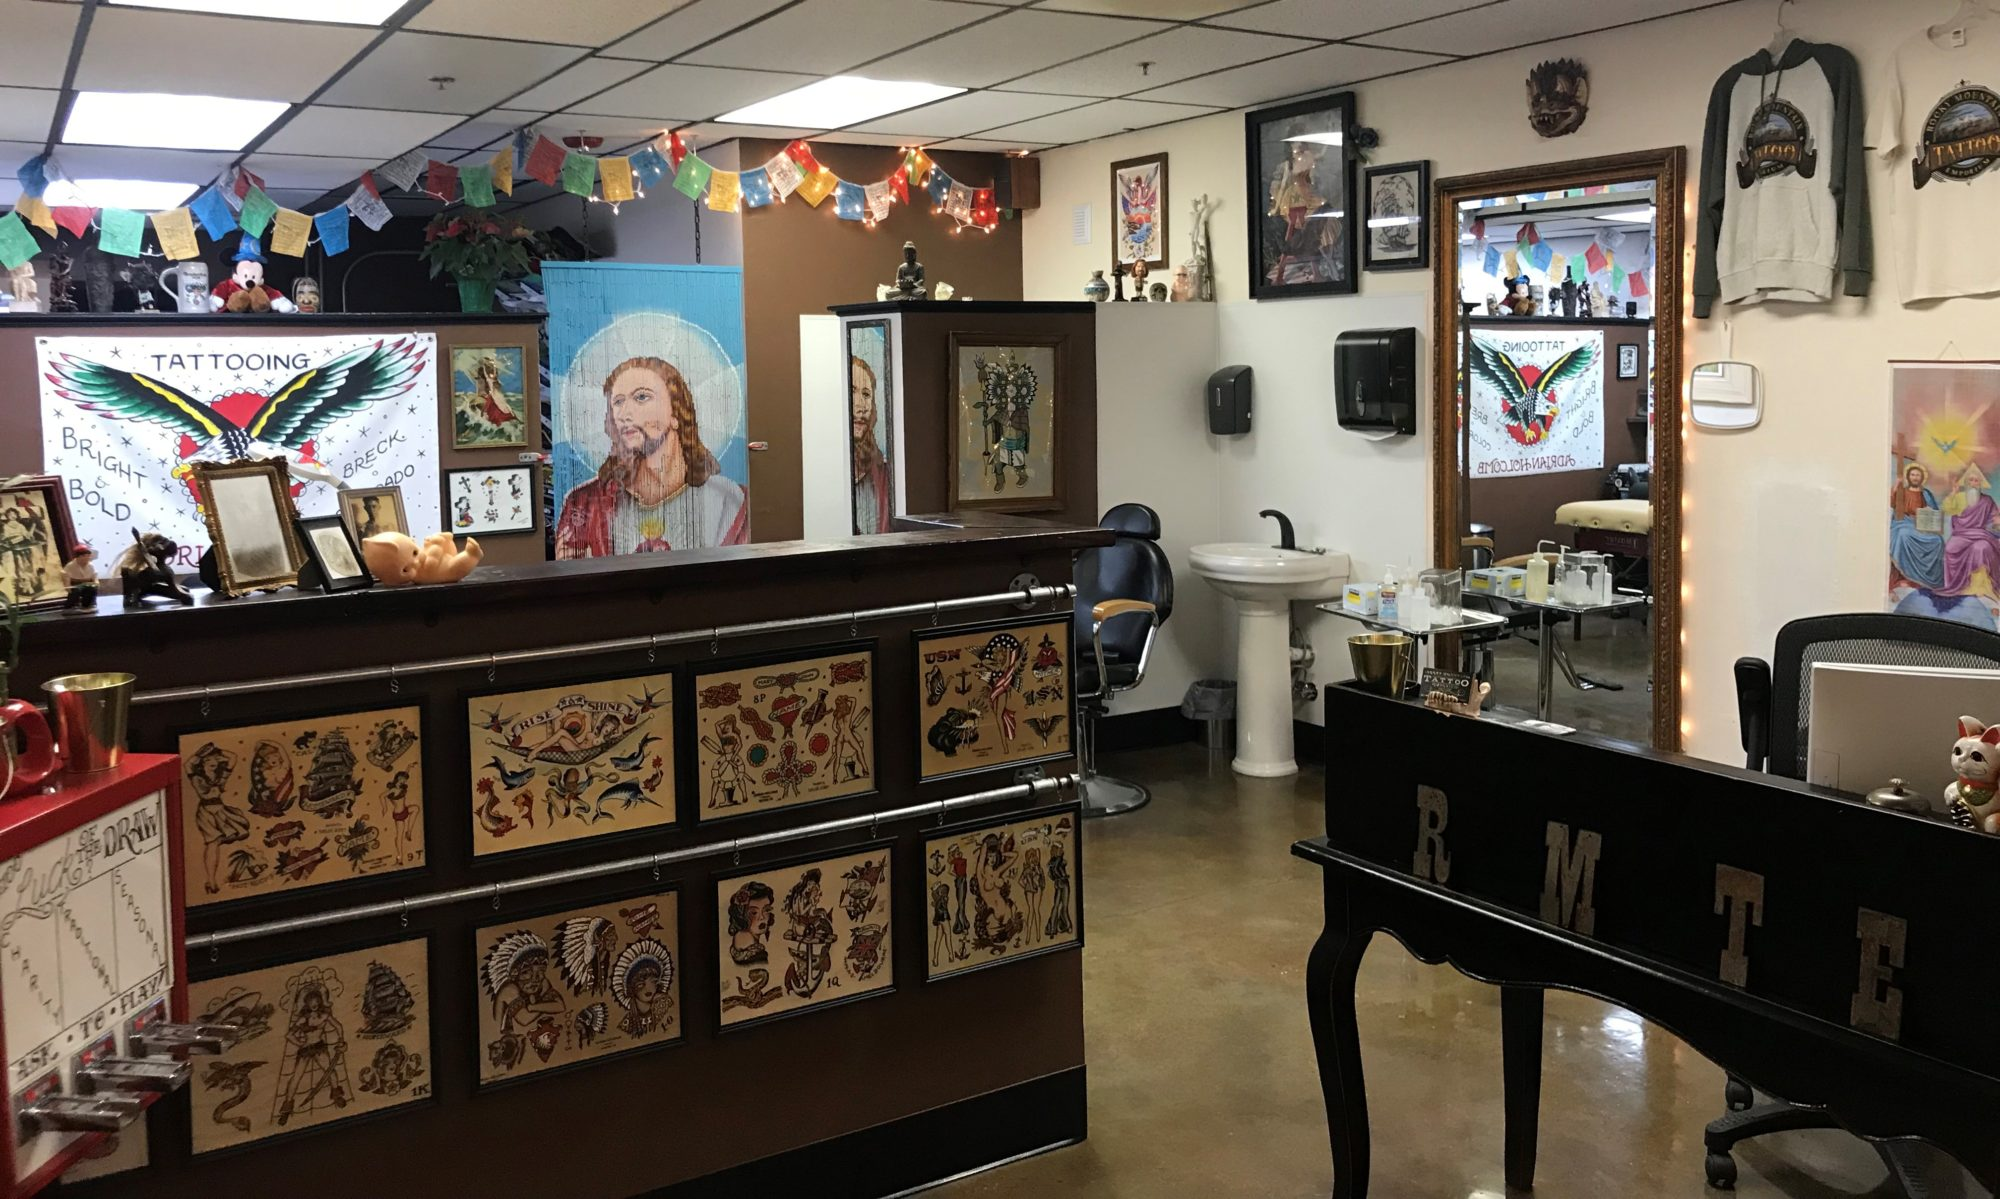 Rocky Mountain Tattoo Emporium